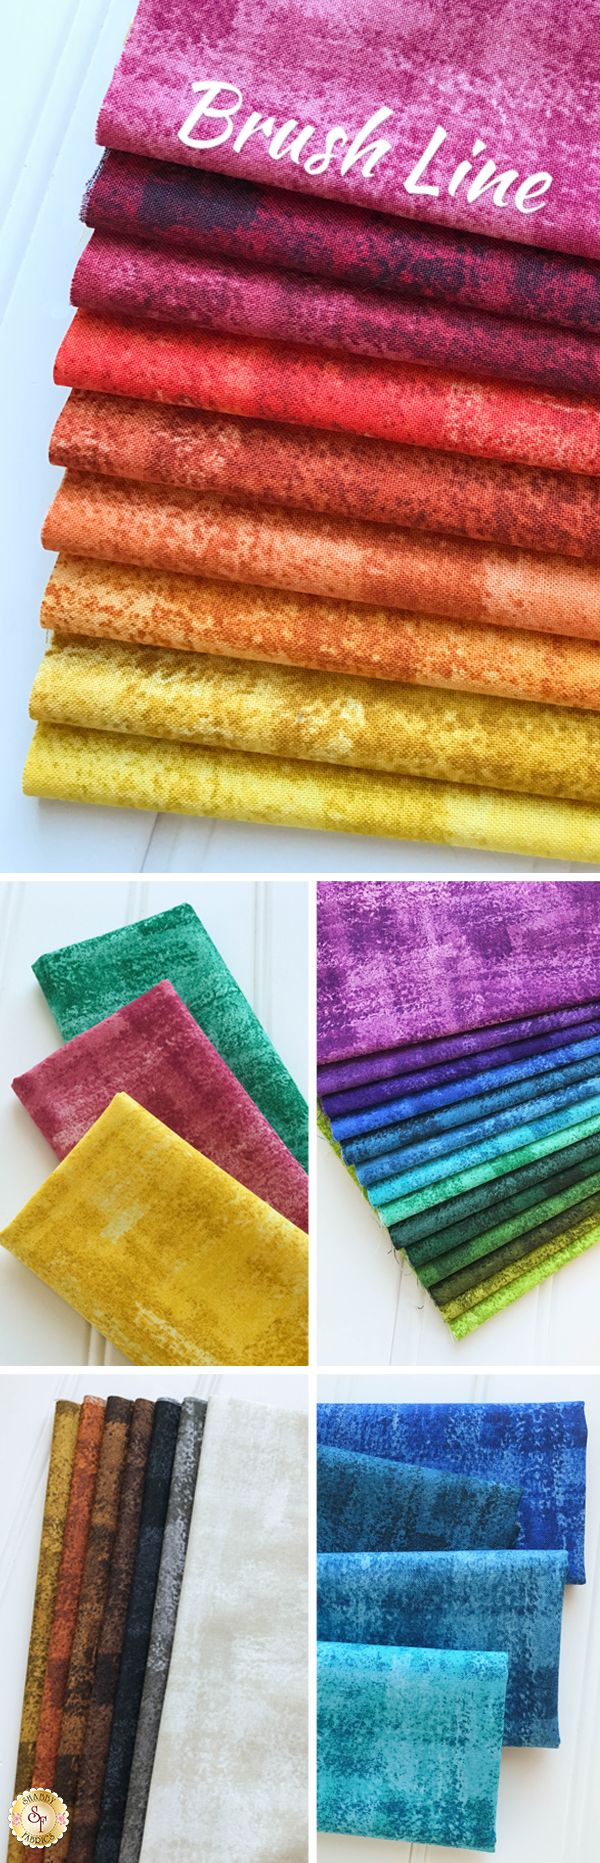 Brushline by Andover Fabrics is a beautiful textured basics collection available at Shabby Fabrics!